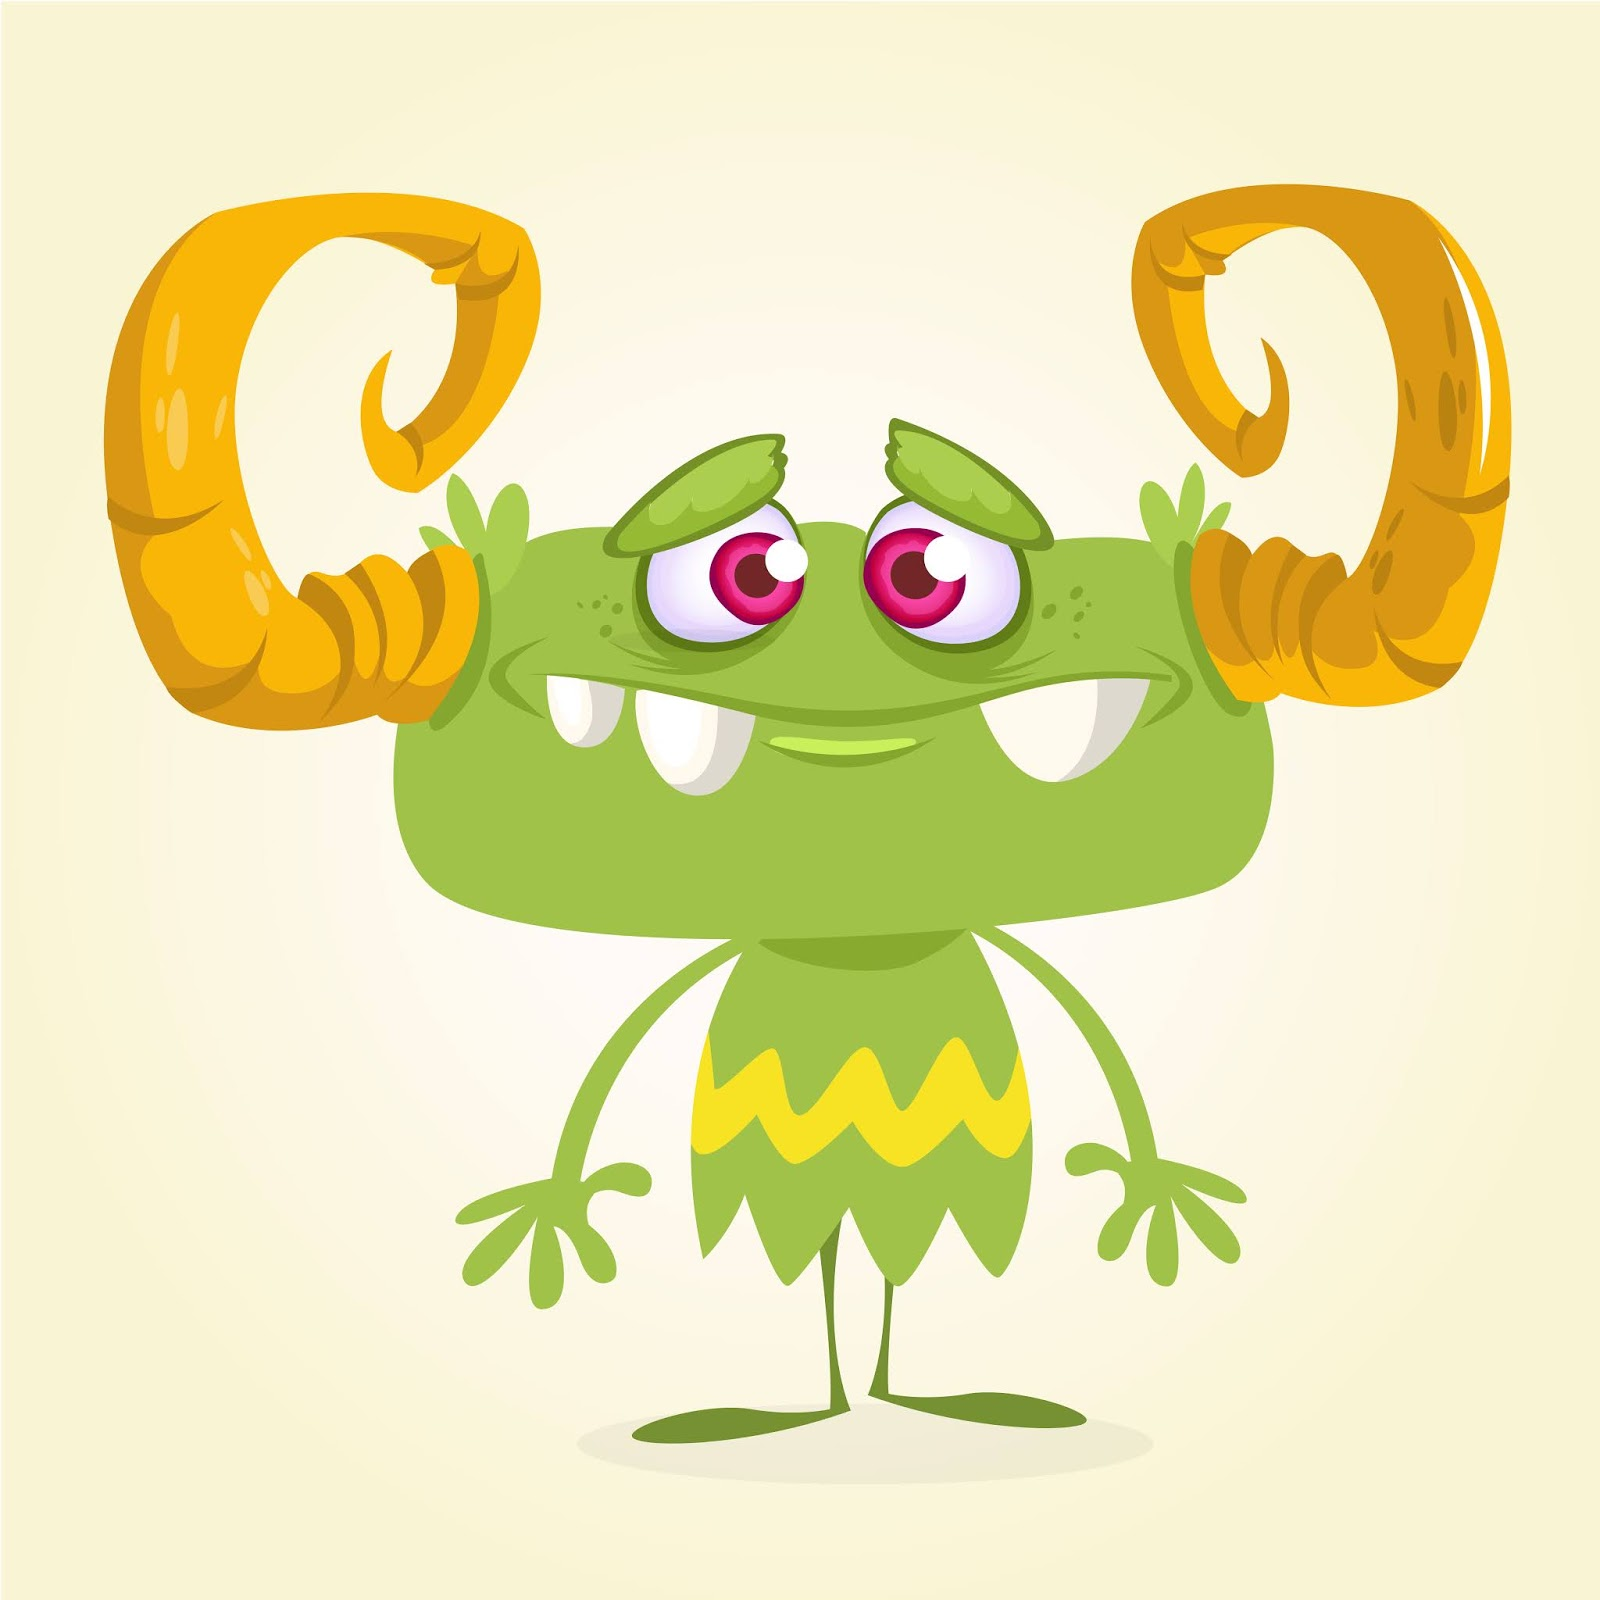 Cartoon Style Monster Illustration Free Download Vector CDR, AI, EPS and PNG Formats